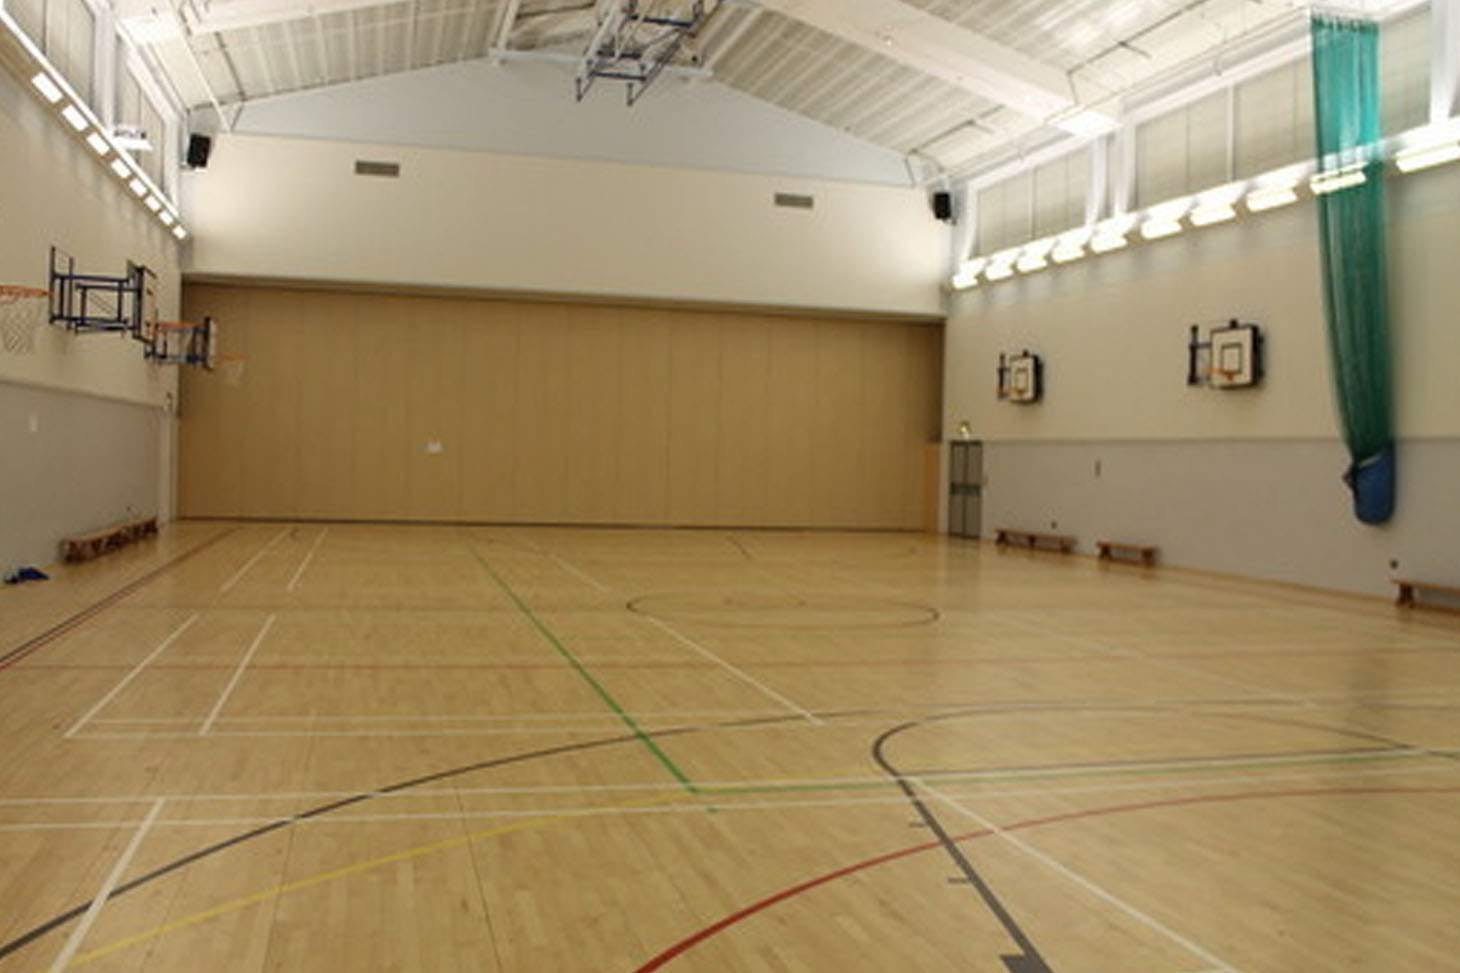 Whitburn C of E Academy Indoor basketball court